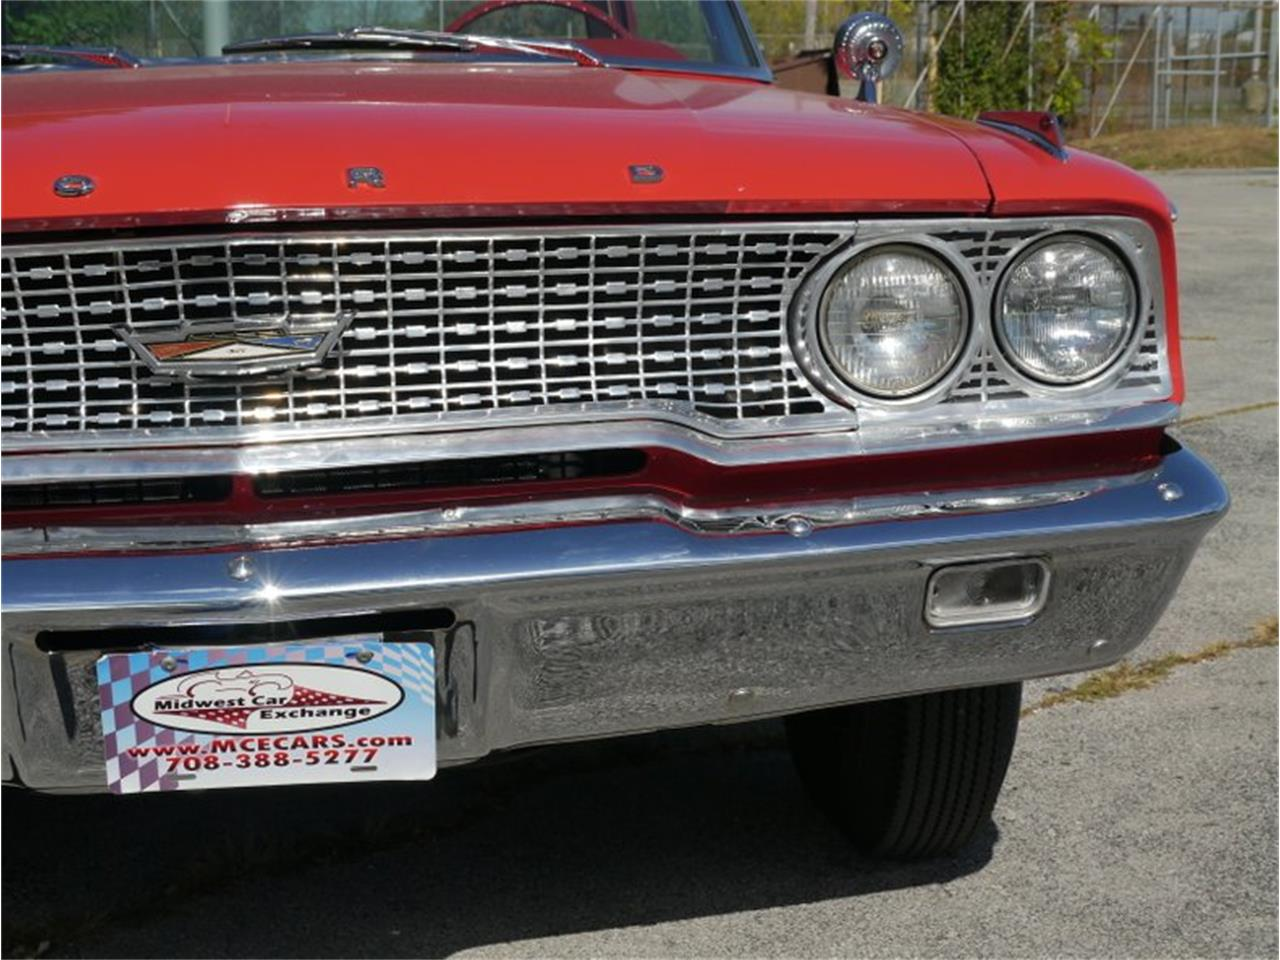 1963 Ford Galaxie 500 for sale in Alsip, IL – photo 56